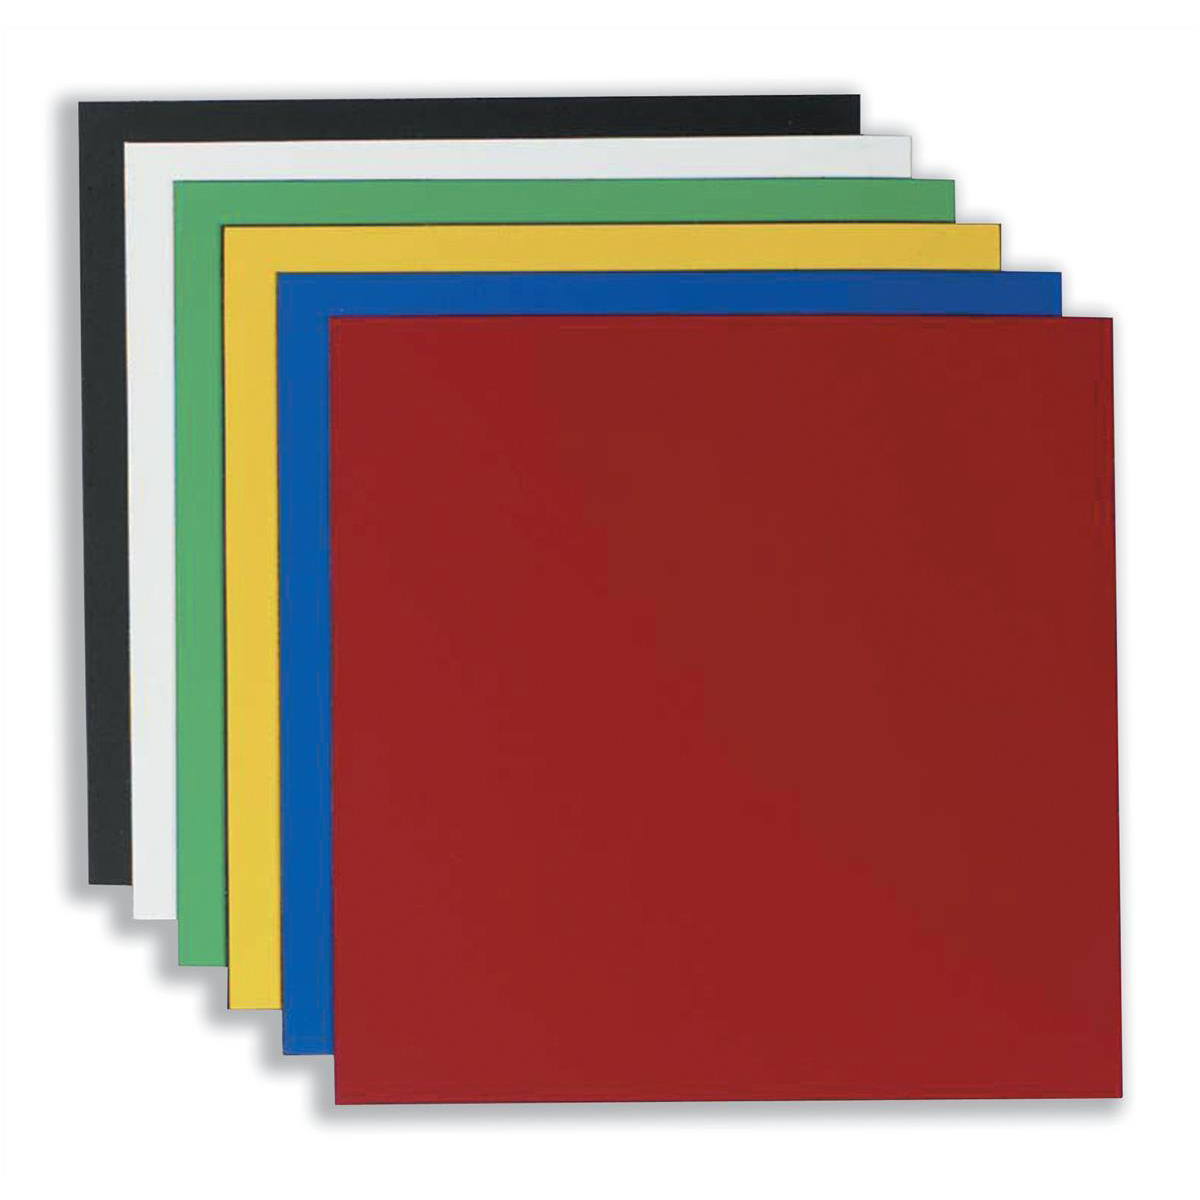 Magnets Nobo Magnetic Squares Vinyl 150x150mm Assorted Ref 1901104 Pack 6